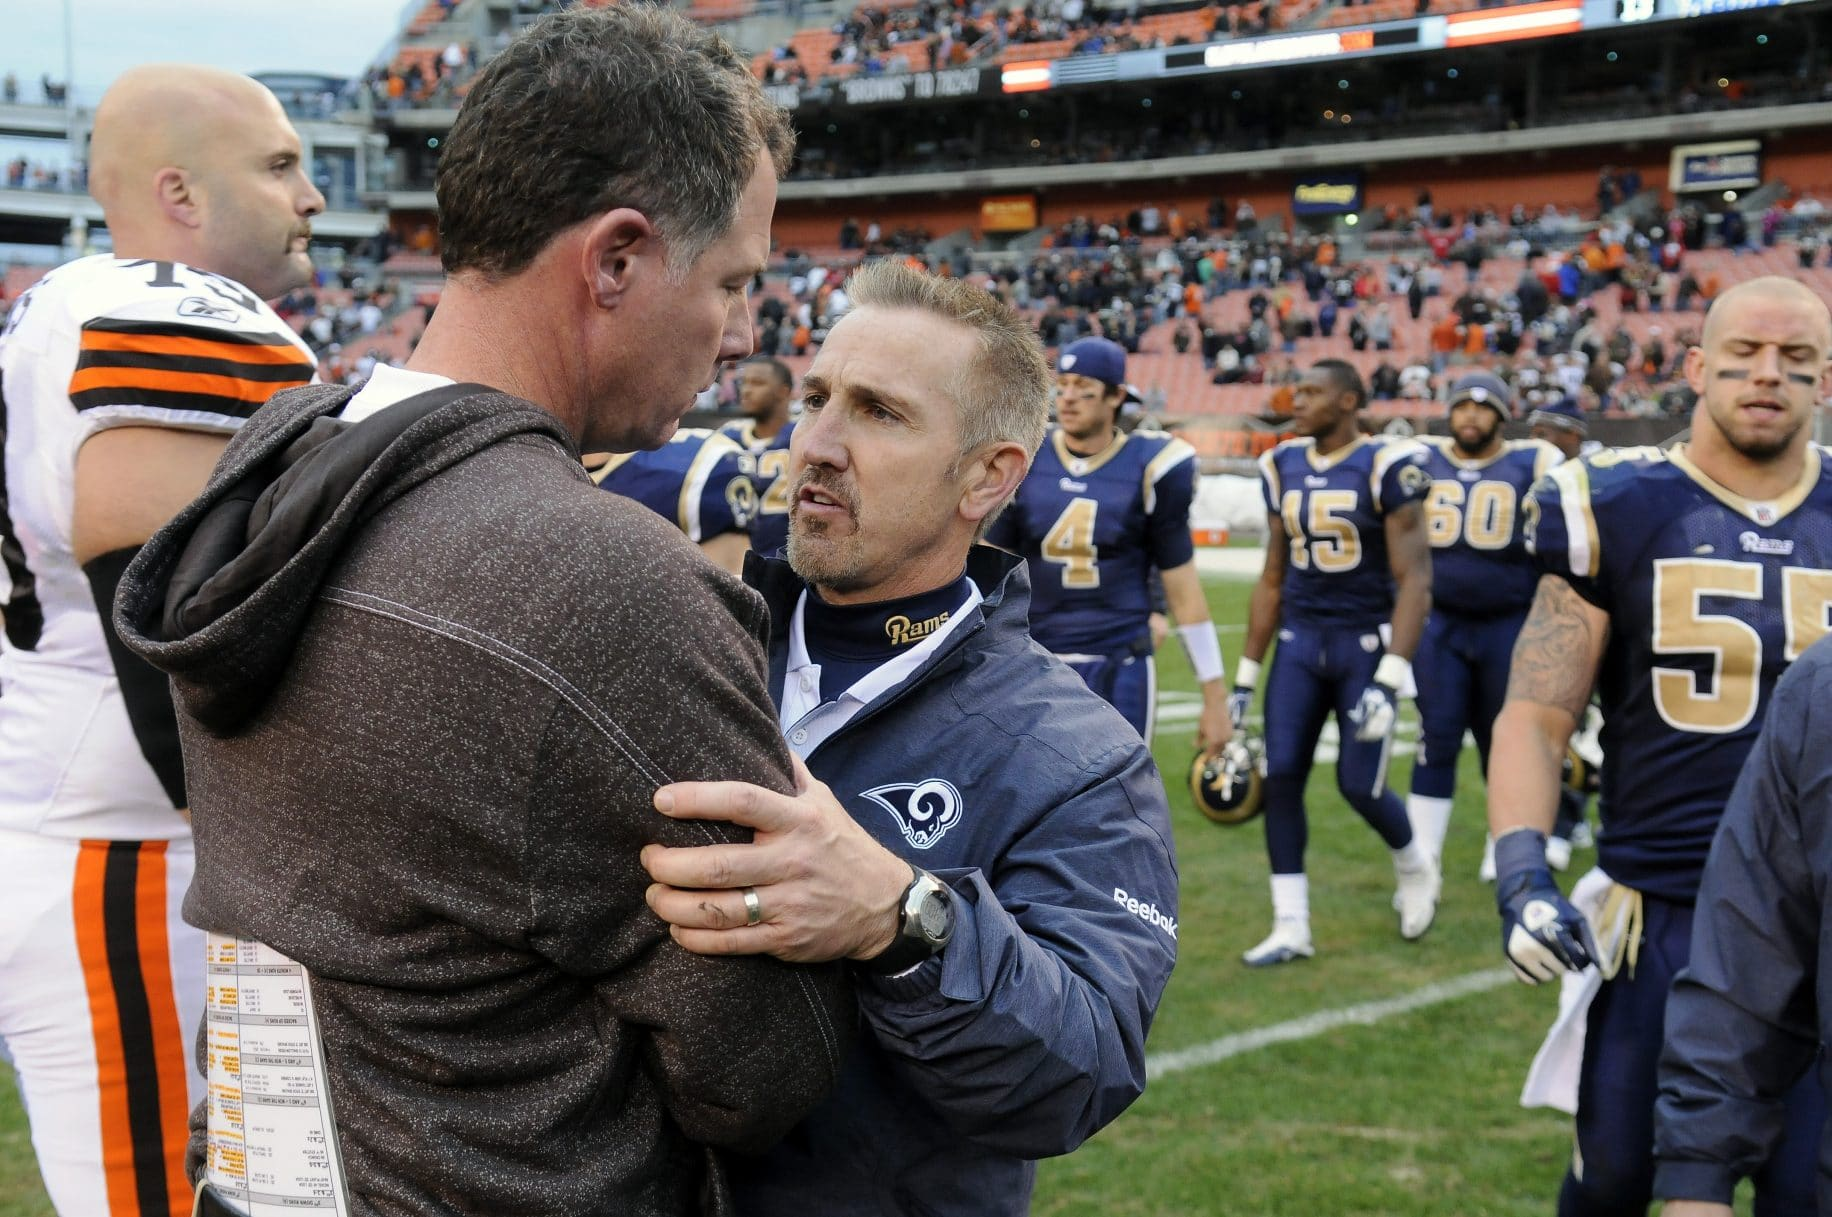 CLEVELAND, OH - NOVEMBER 13: Head coach Pat Shurmur of the Cleveland Browns congratulates head coach Steve Spagnuolo of the St. Louis Rams after the Rams defeated the Browns 13-12 at Cleveland Browns Stadium on November 13, 2011 in Cleveland, Ohio. The Rams defeated the Browns 13-12.